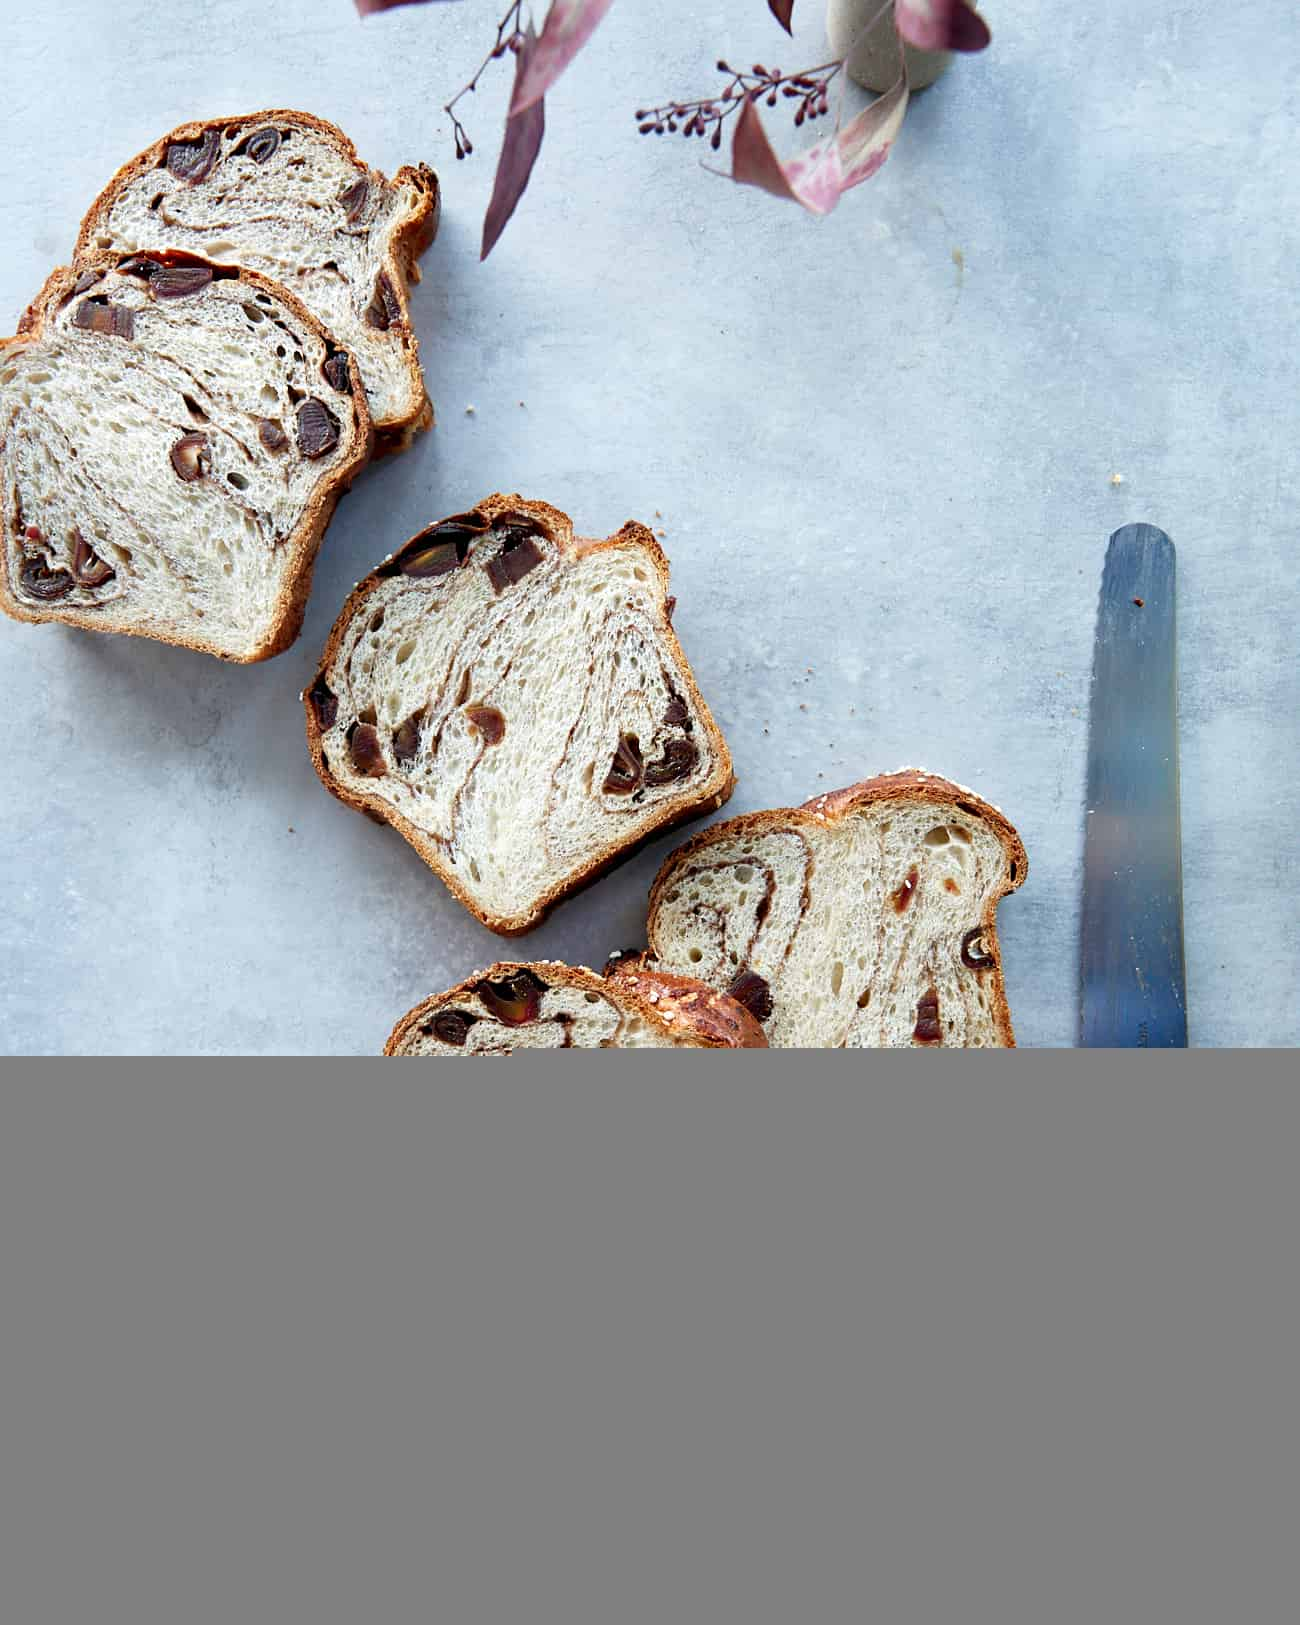 Overhead image of sliced cinnamon swirl sourdough bread